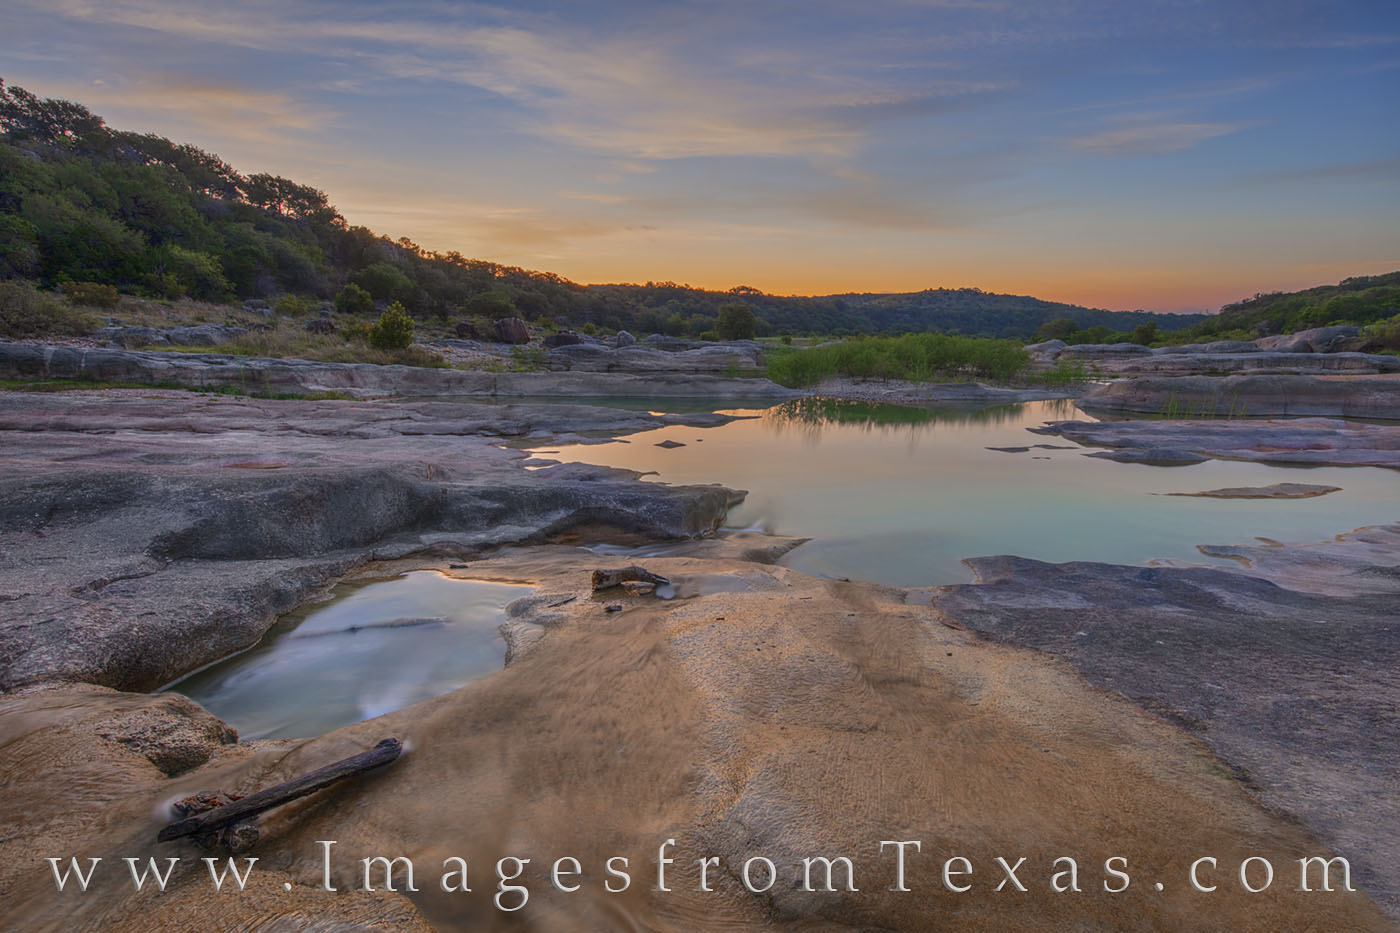 texas hill country, pedernales river, sunrise, morning, pedernals falls, state park, river, water, hays county, johnson city, outdoors, explore, hiking, photo